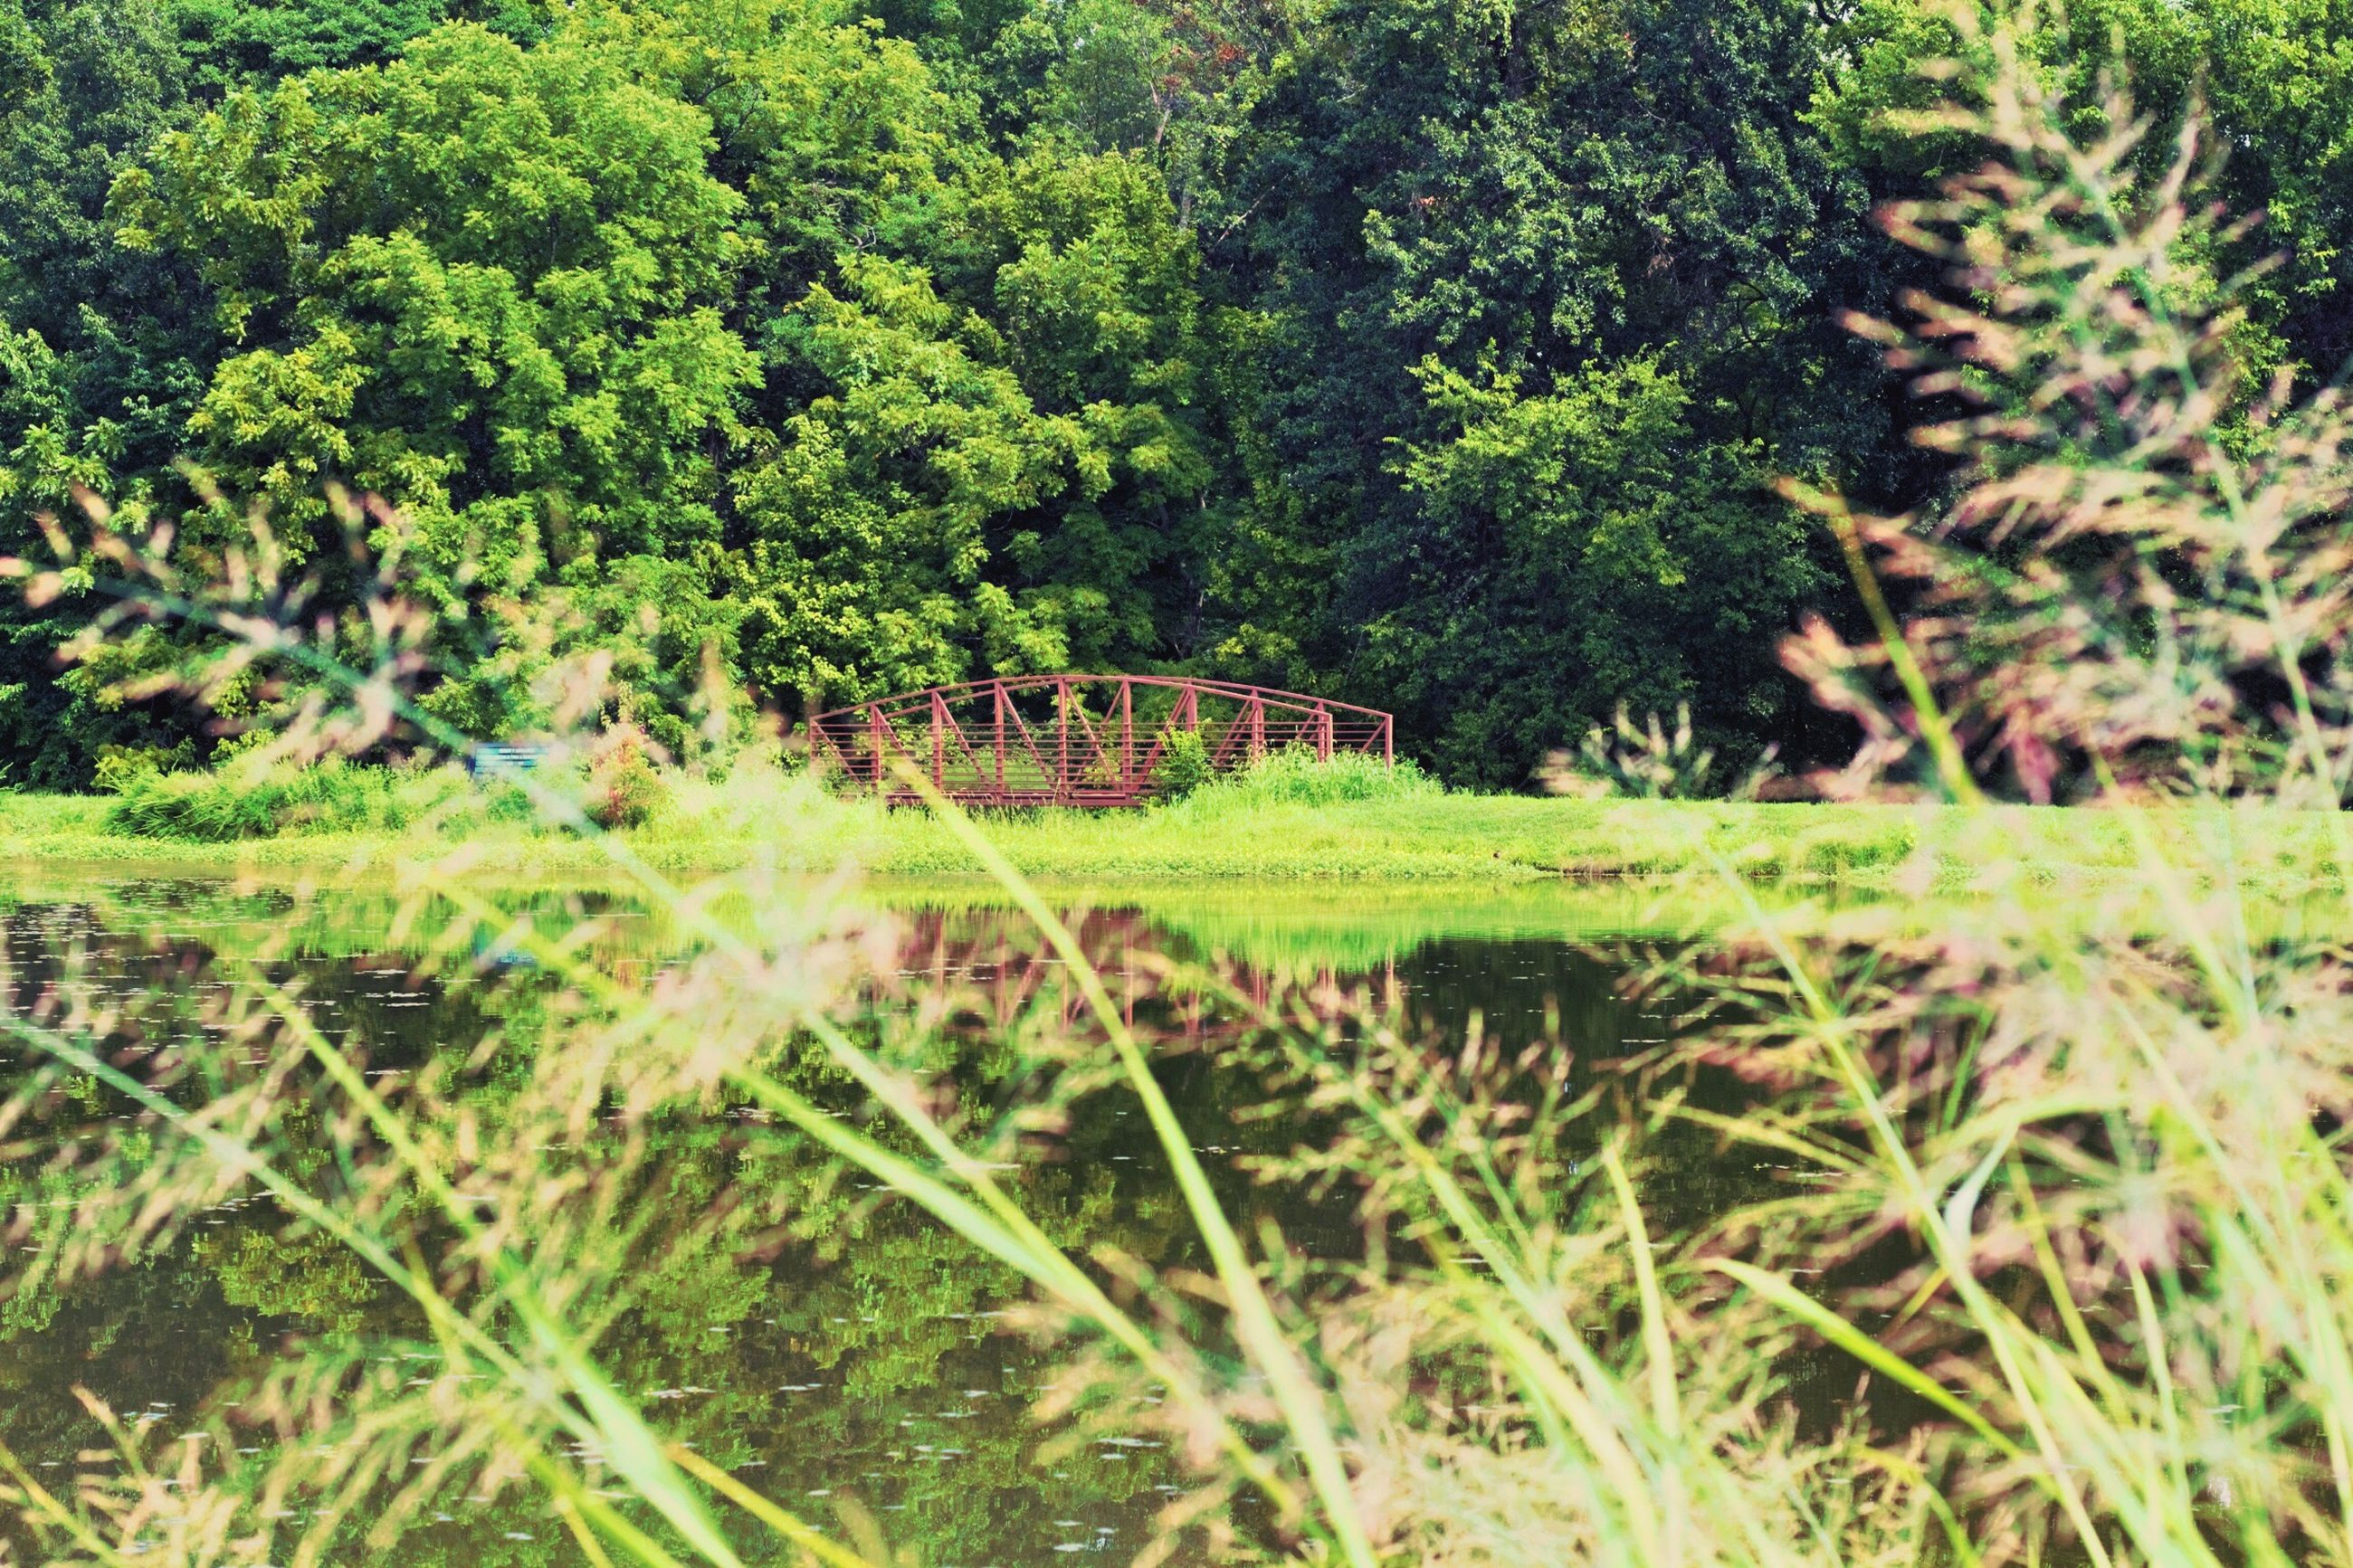 growth, tree, green color, nature, plant, beauty in nature, tranquil scene, scenics, tranquility, day, outdoors, green, non-urban scene, remote, growing, solitude, lush foliage, freshness, surface level, no people, garden